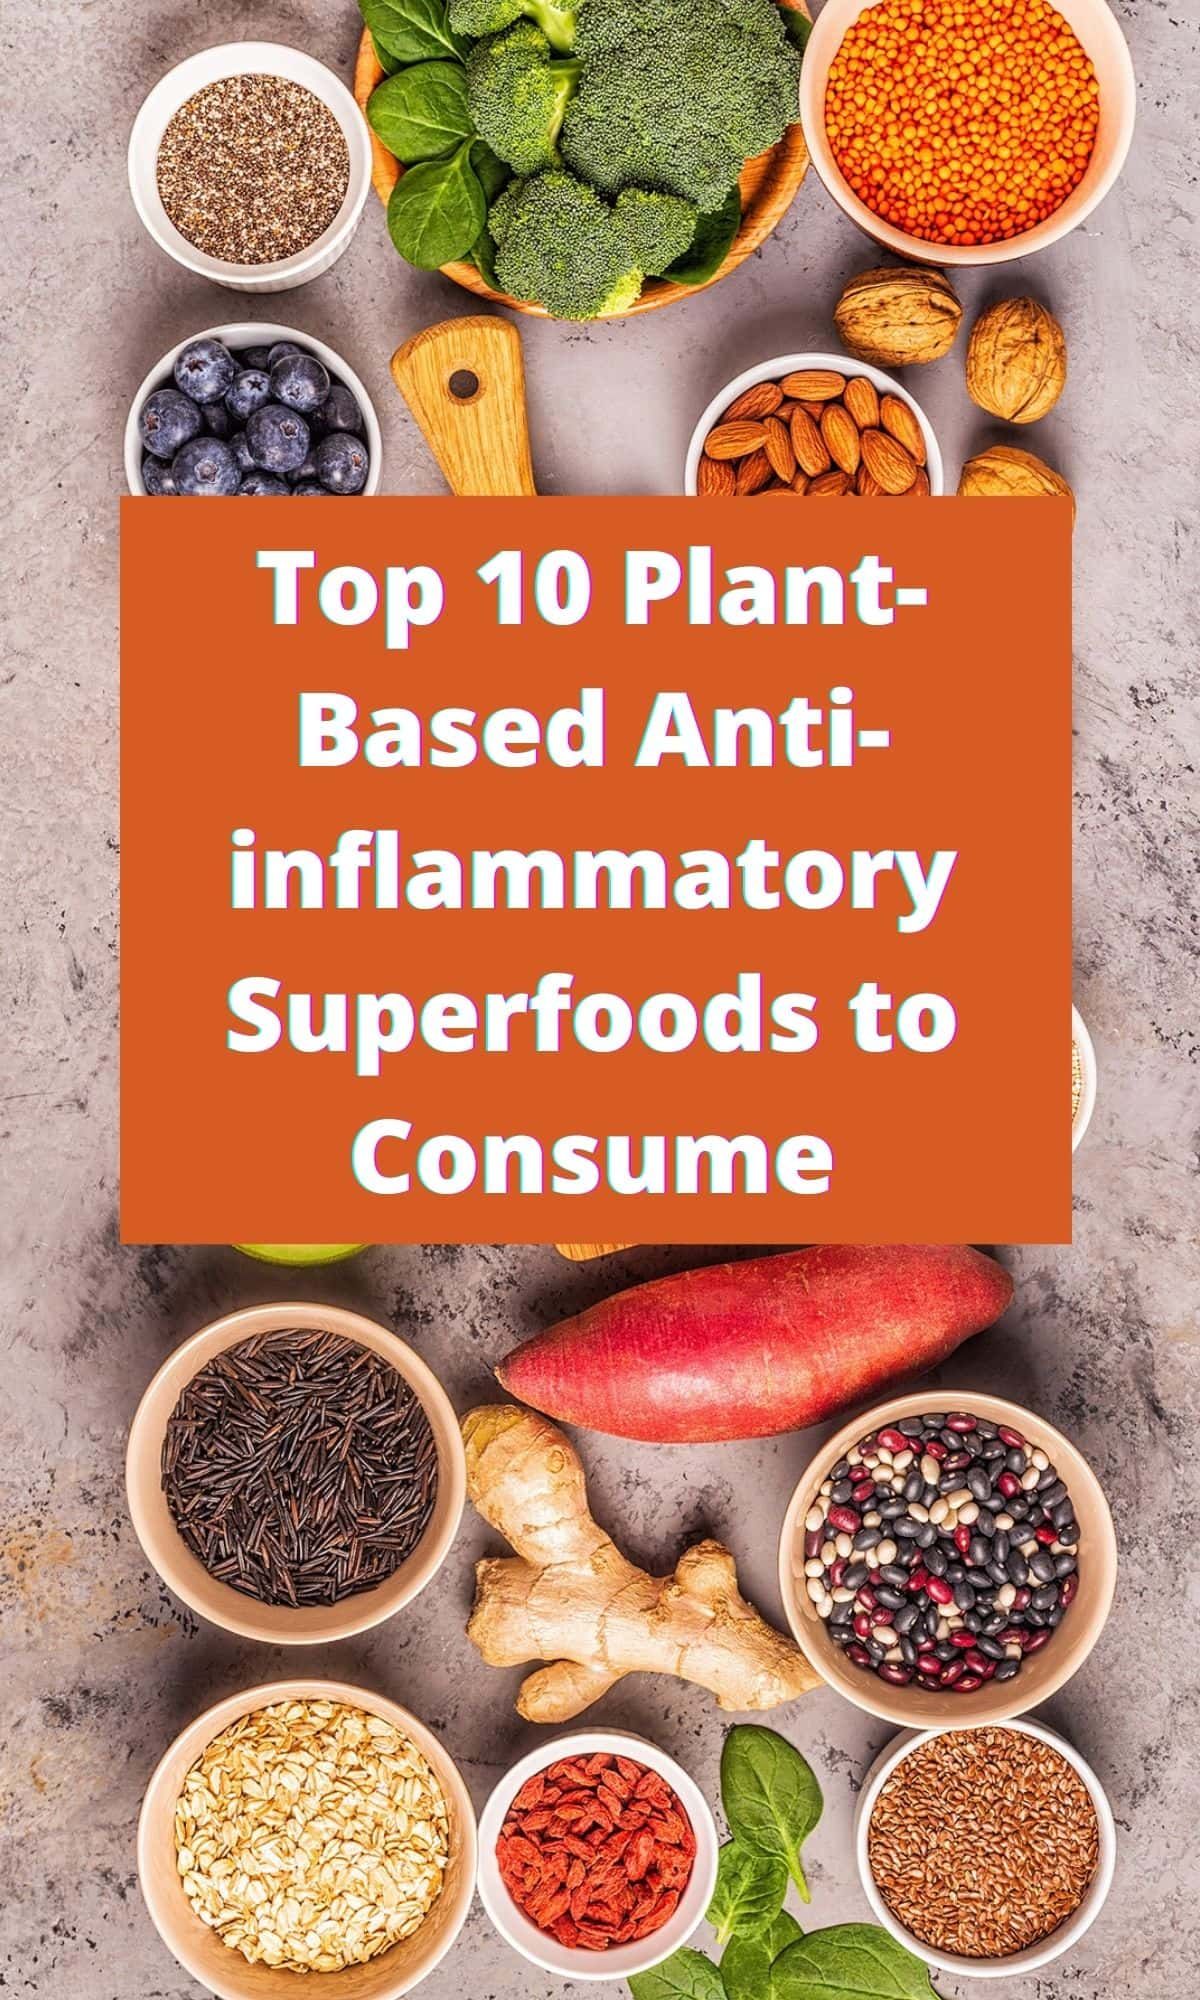 Top 10 Plant-Based Anti-inflammatory Superfoods to Consume